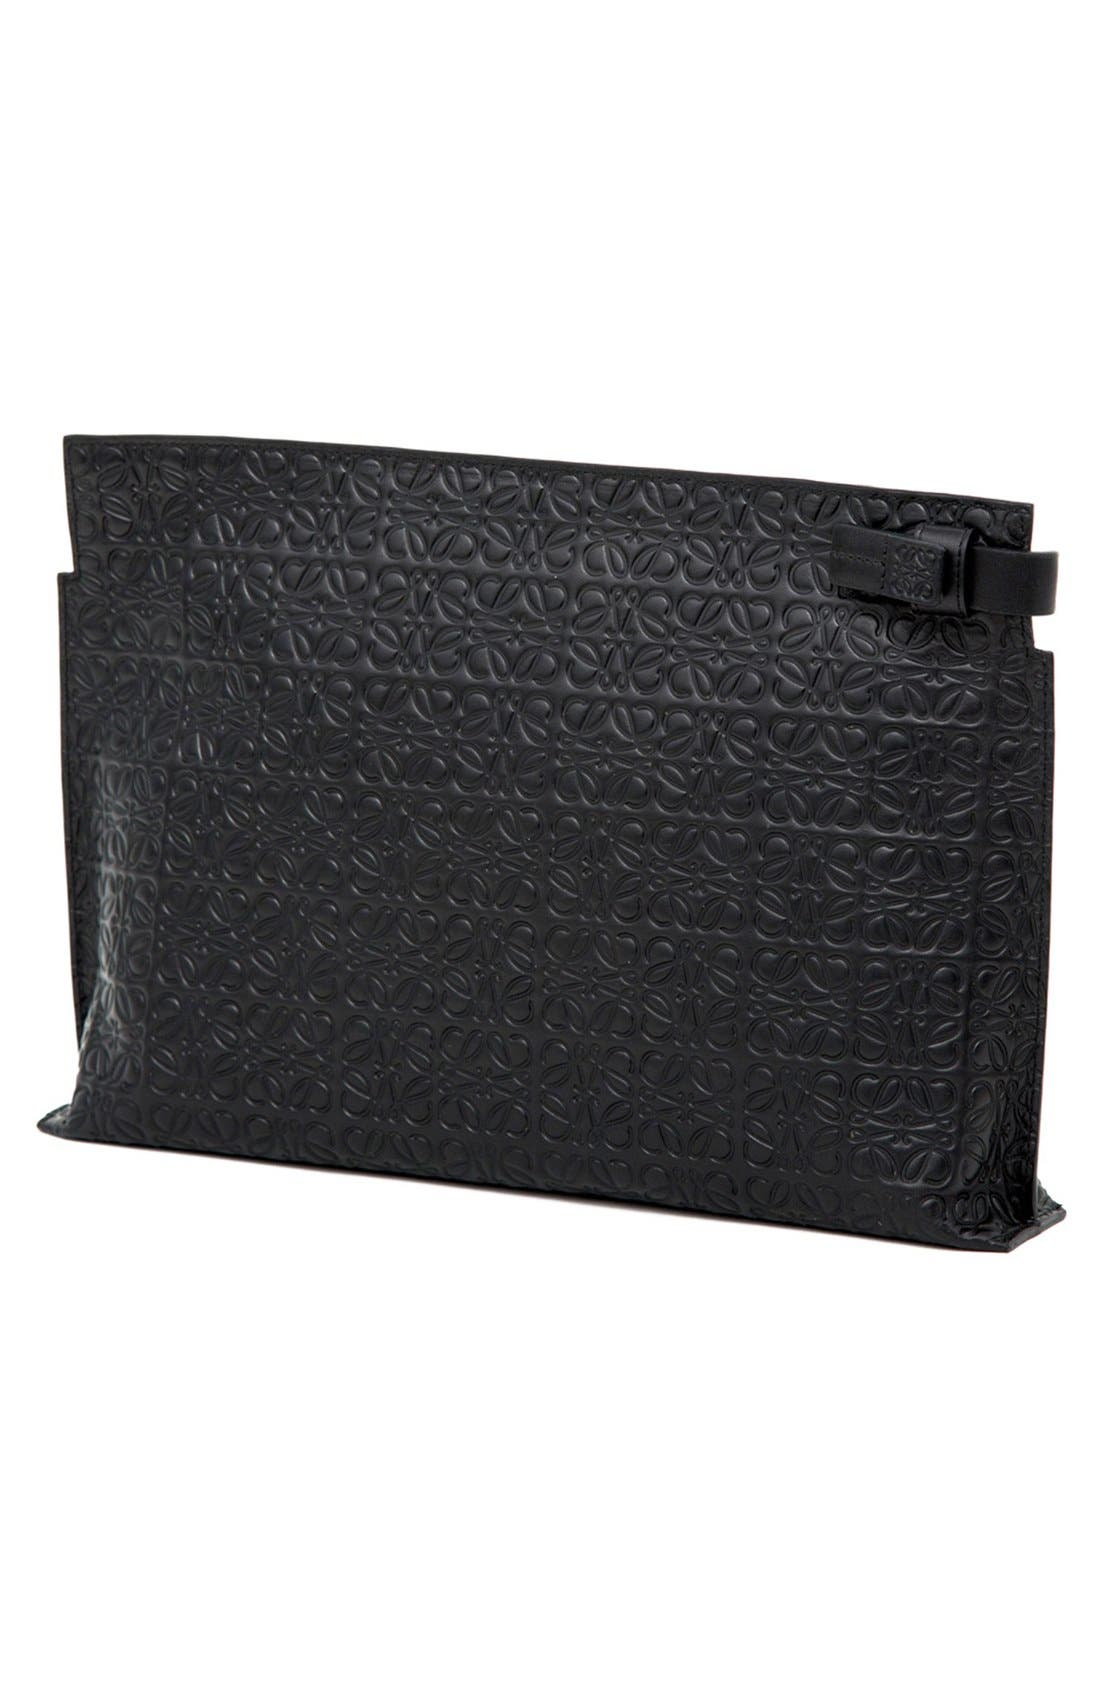 LOEWE,                             Large Logo Embossed Calfskin Leather Pouch,                             Alternate thumbnail 2, color,                             001